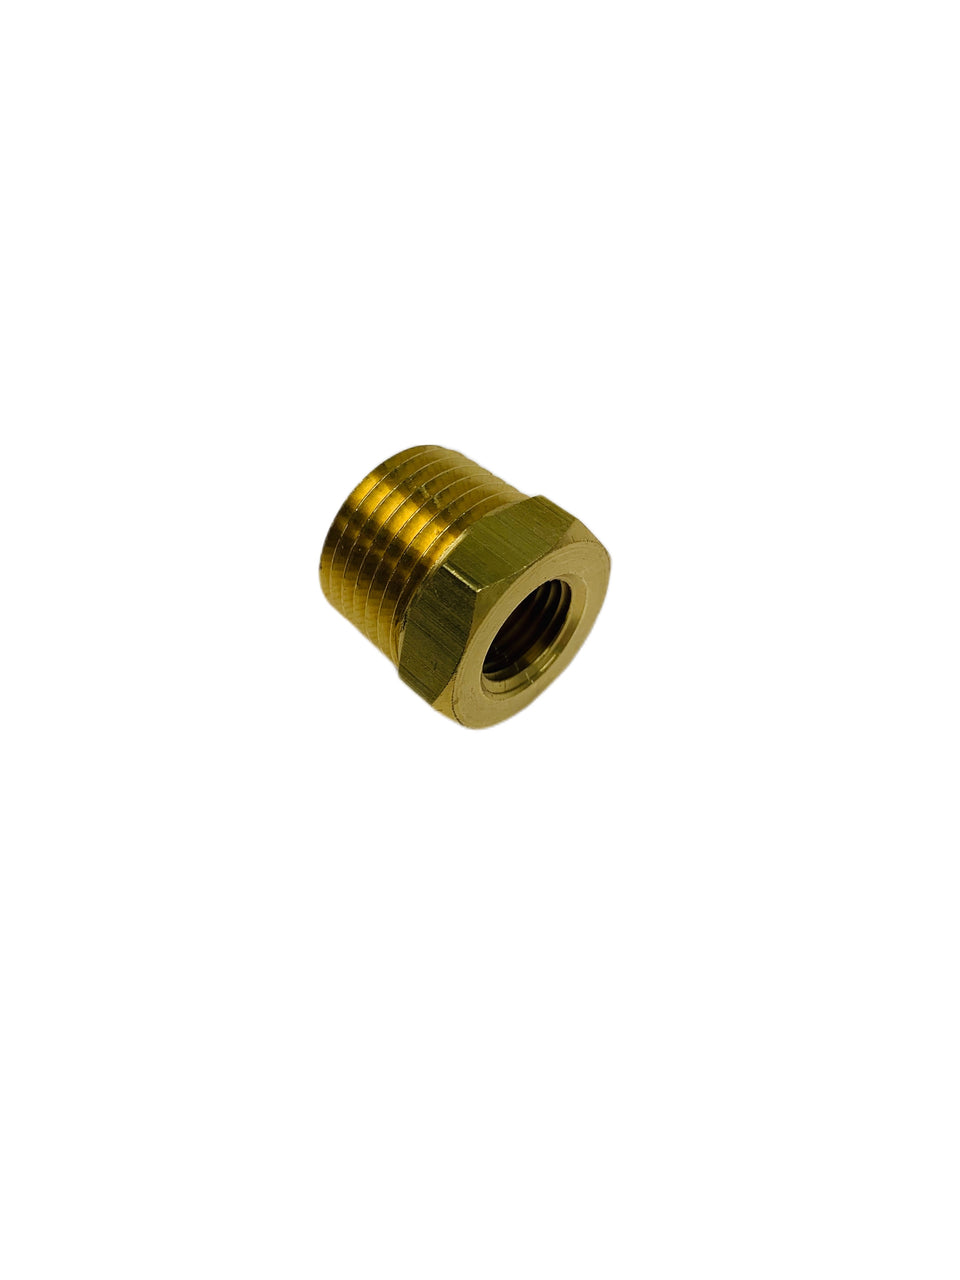 "Brass P-100-128 Female to Male Hex Bushing Pipe 1/2"" x 3/4"" Fitting *Pack of 10*"